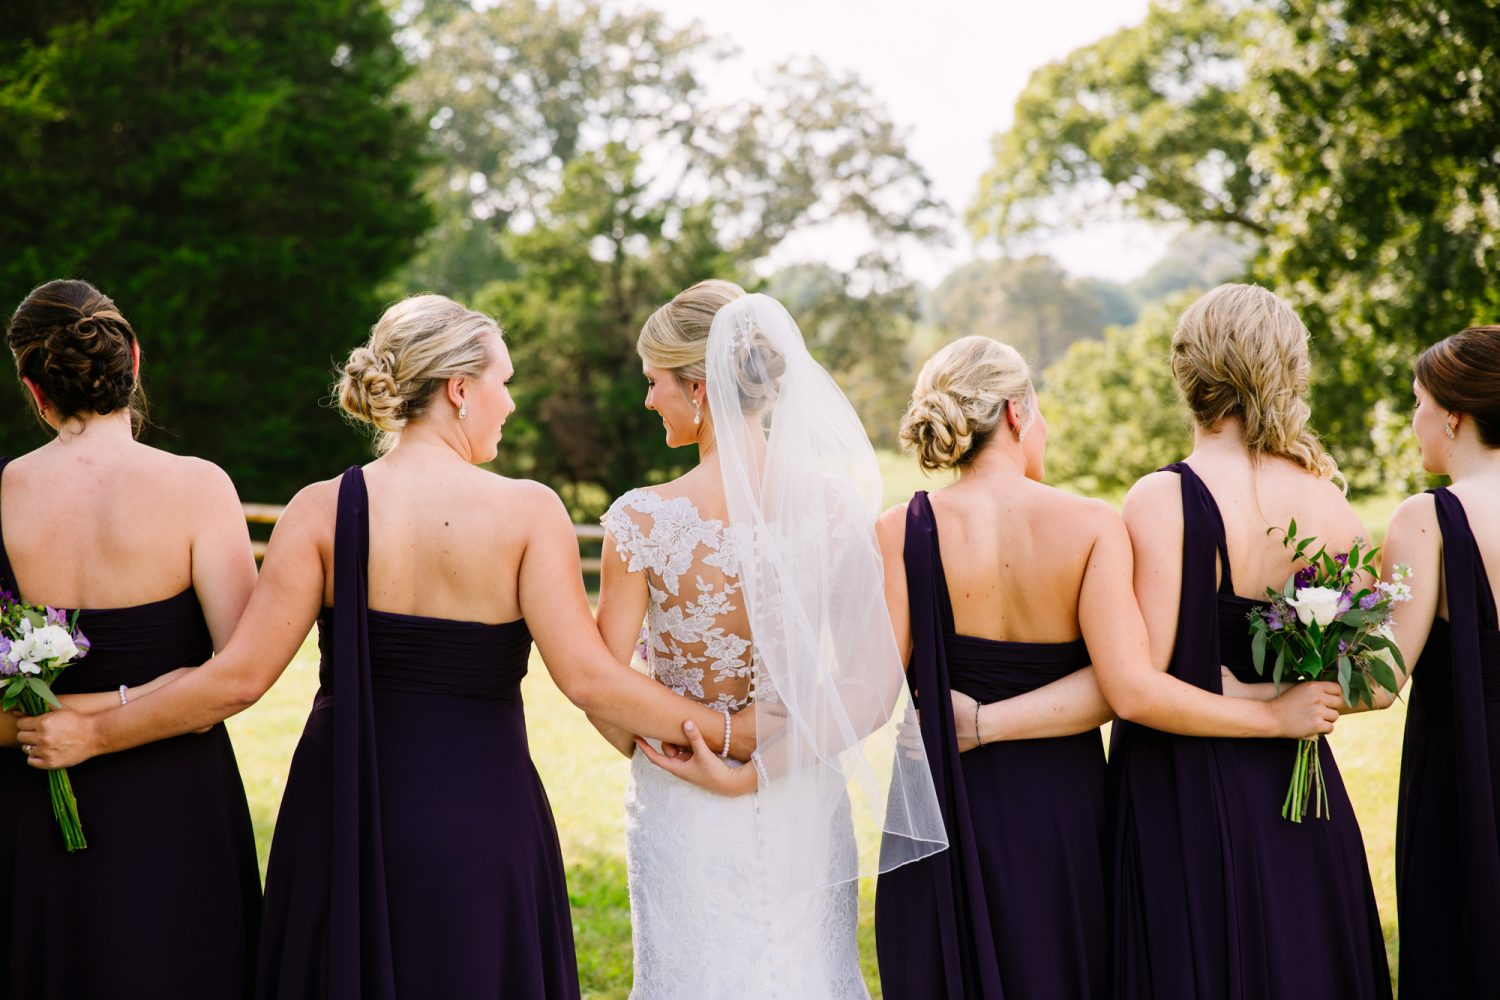 Waynesville, NC Wedding Photography | Bride and Bridesmaids Interlocking Arms